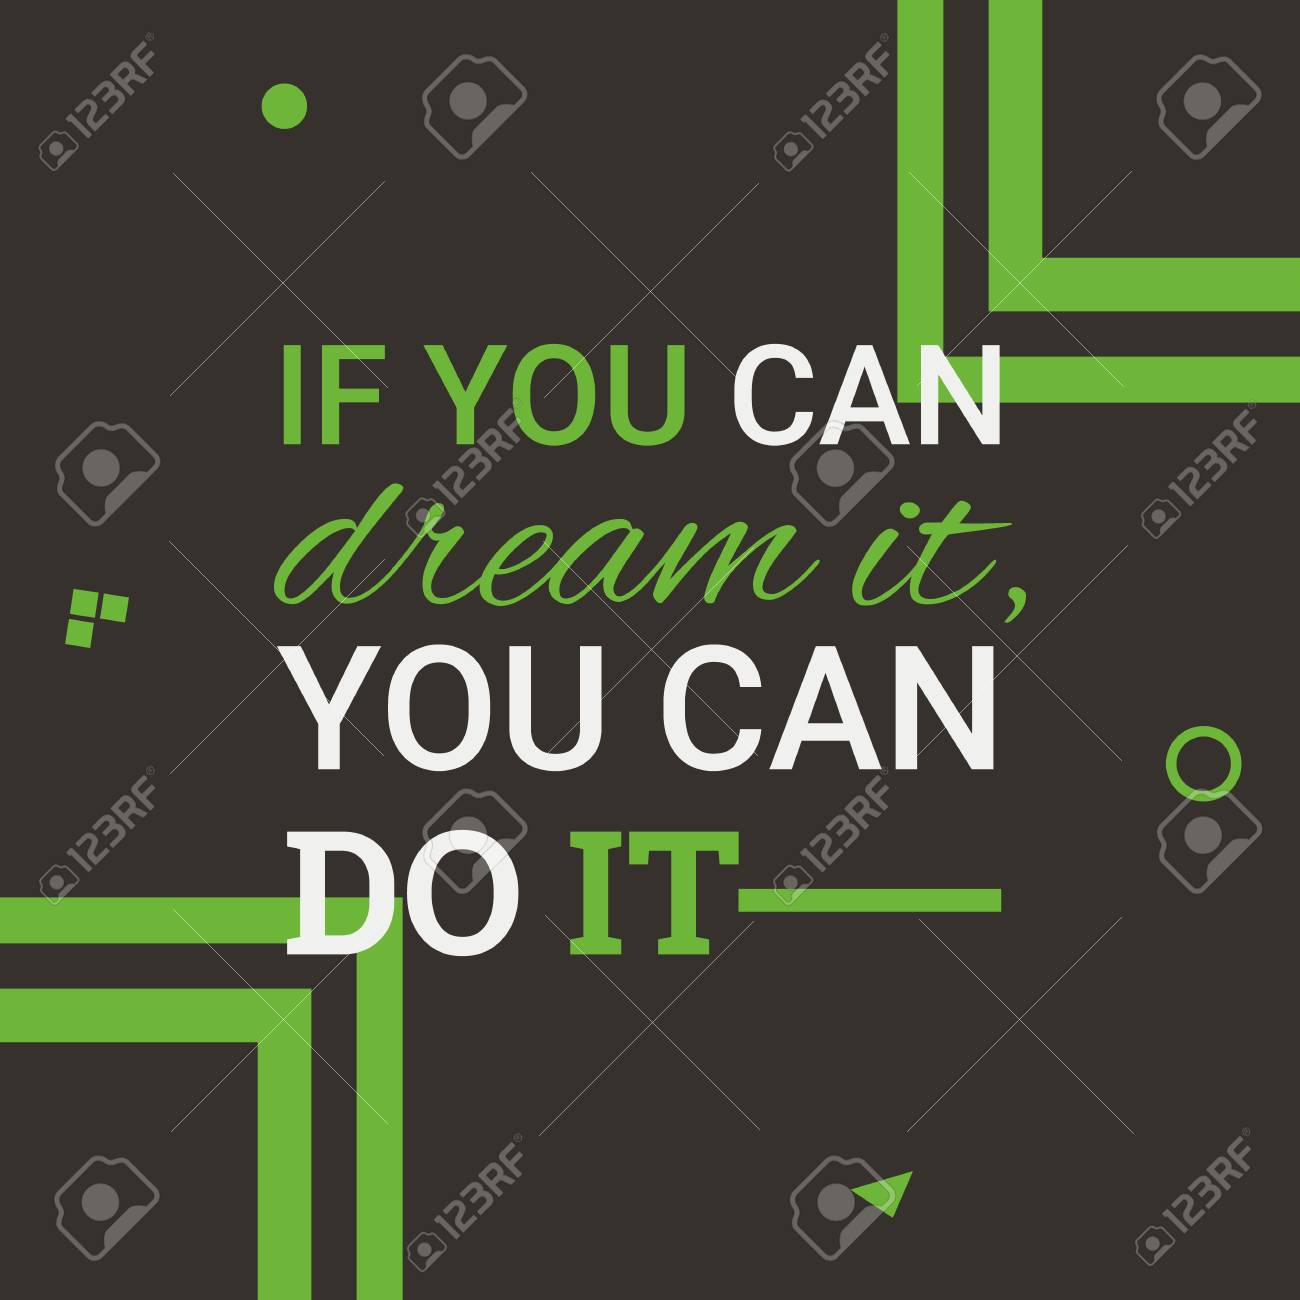 If You Can Dream It You Can Do It Quotes Flat Design Background